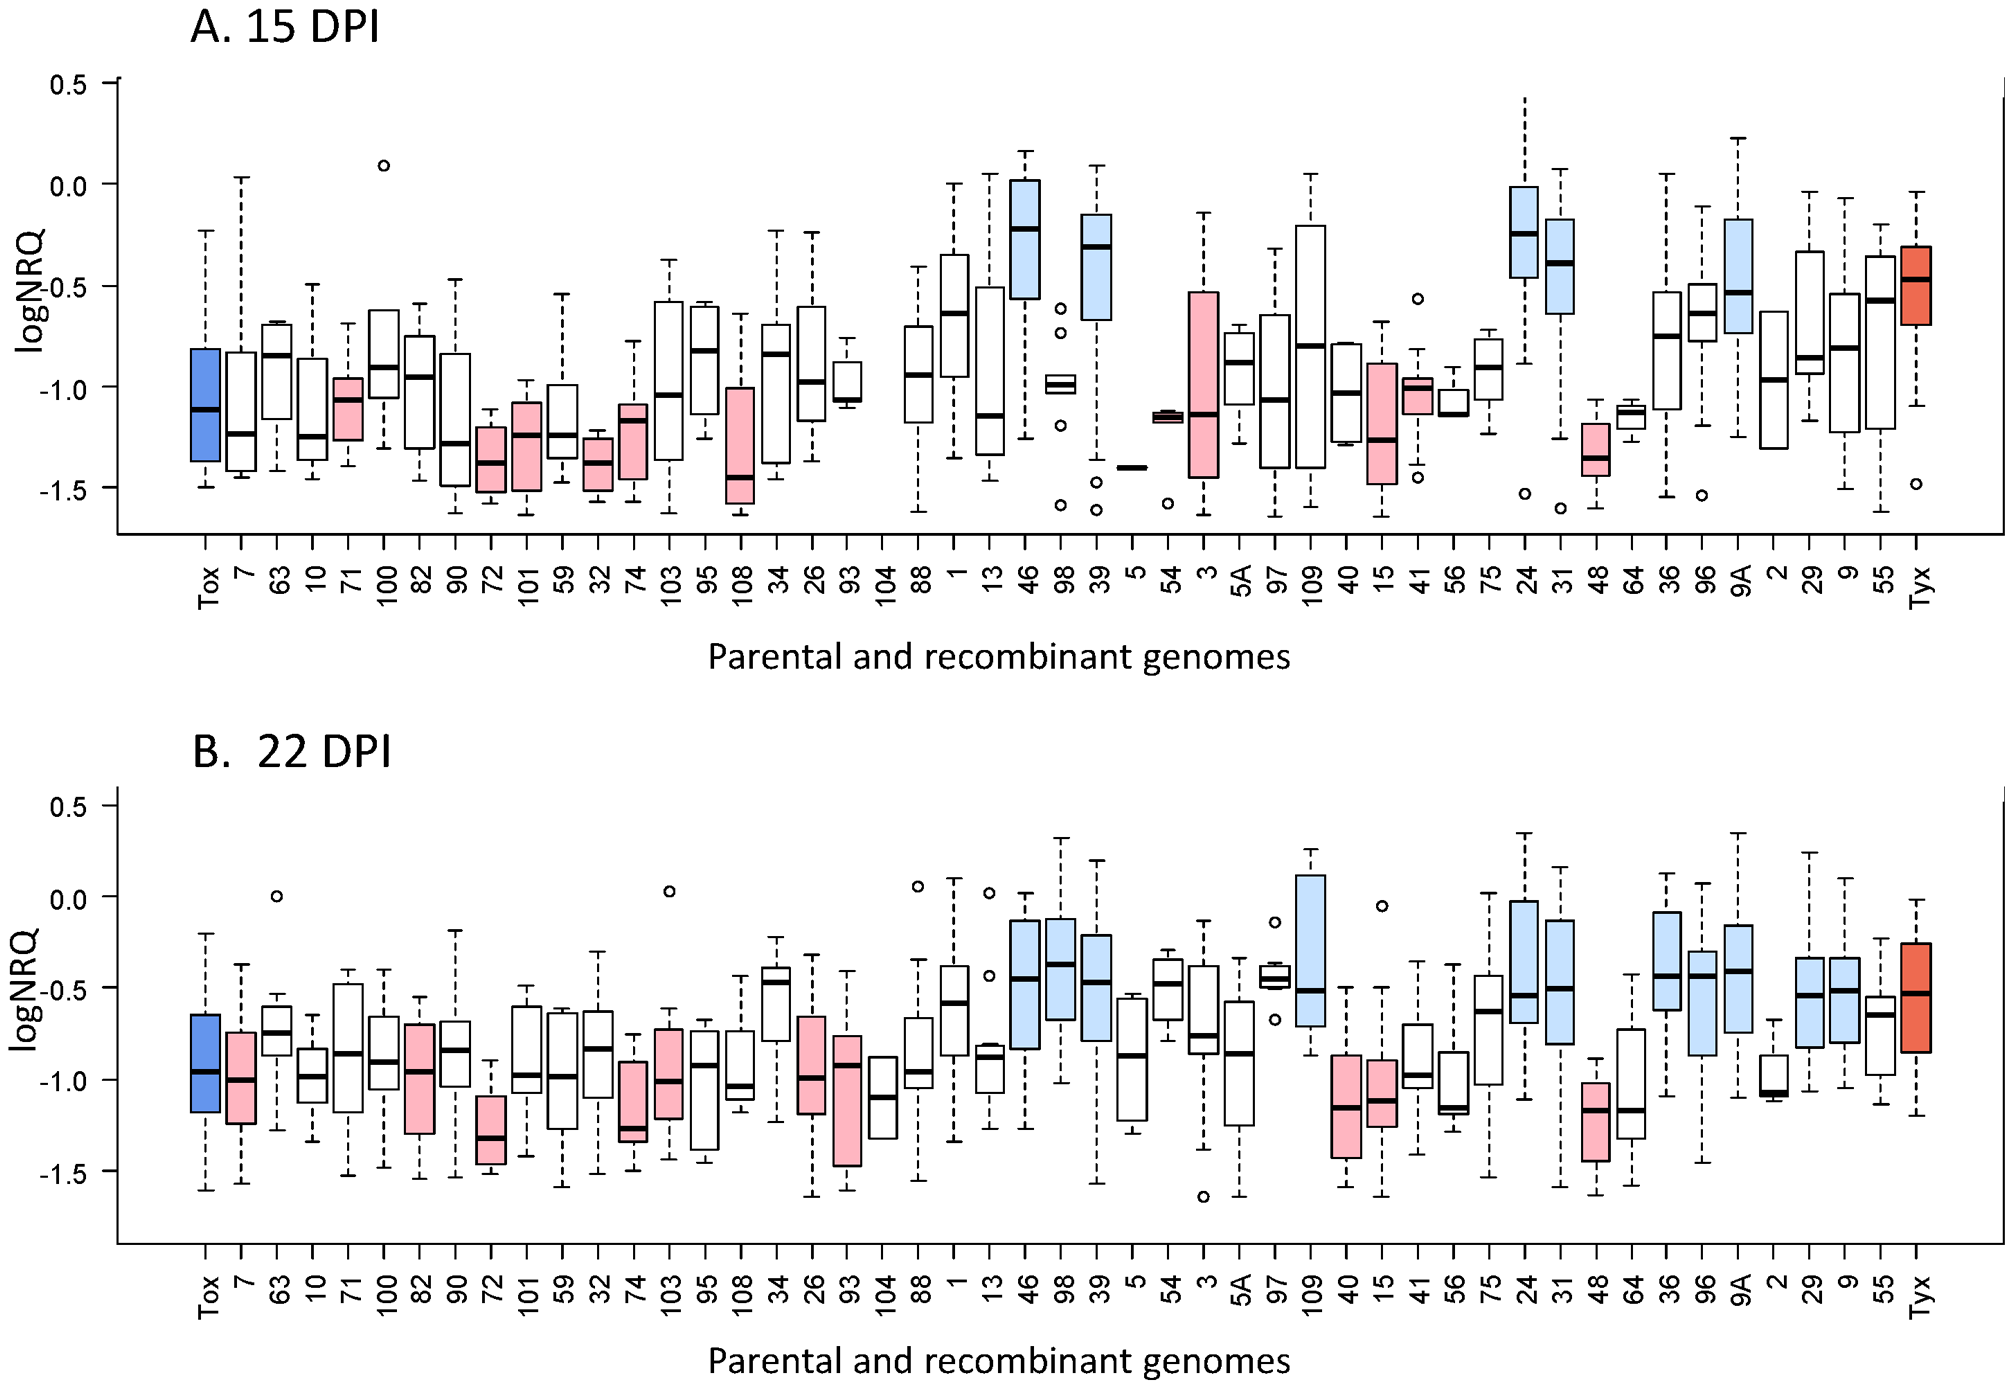 Virus accumulation within infected plants for the 47 recombinants and their two parental genomes.